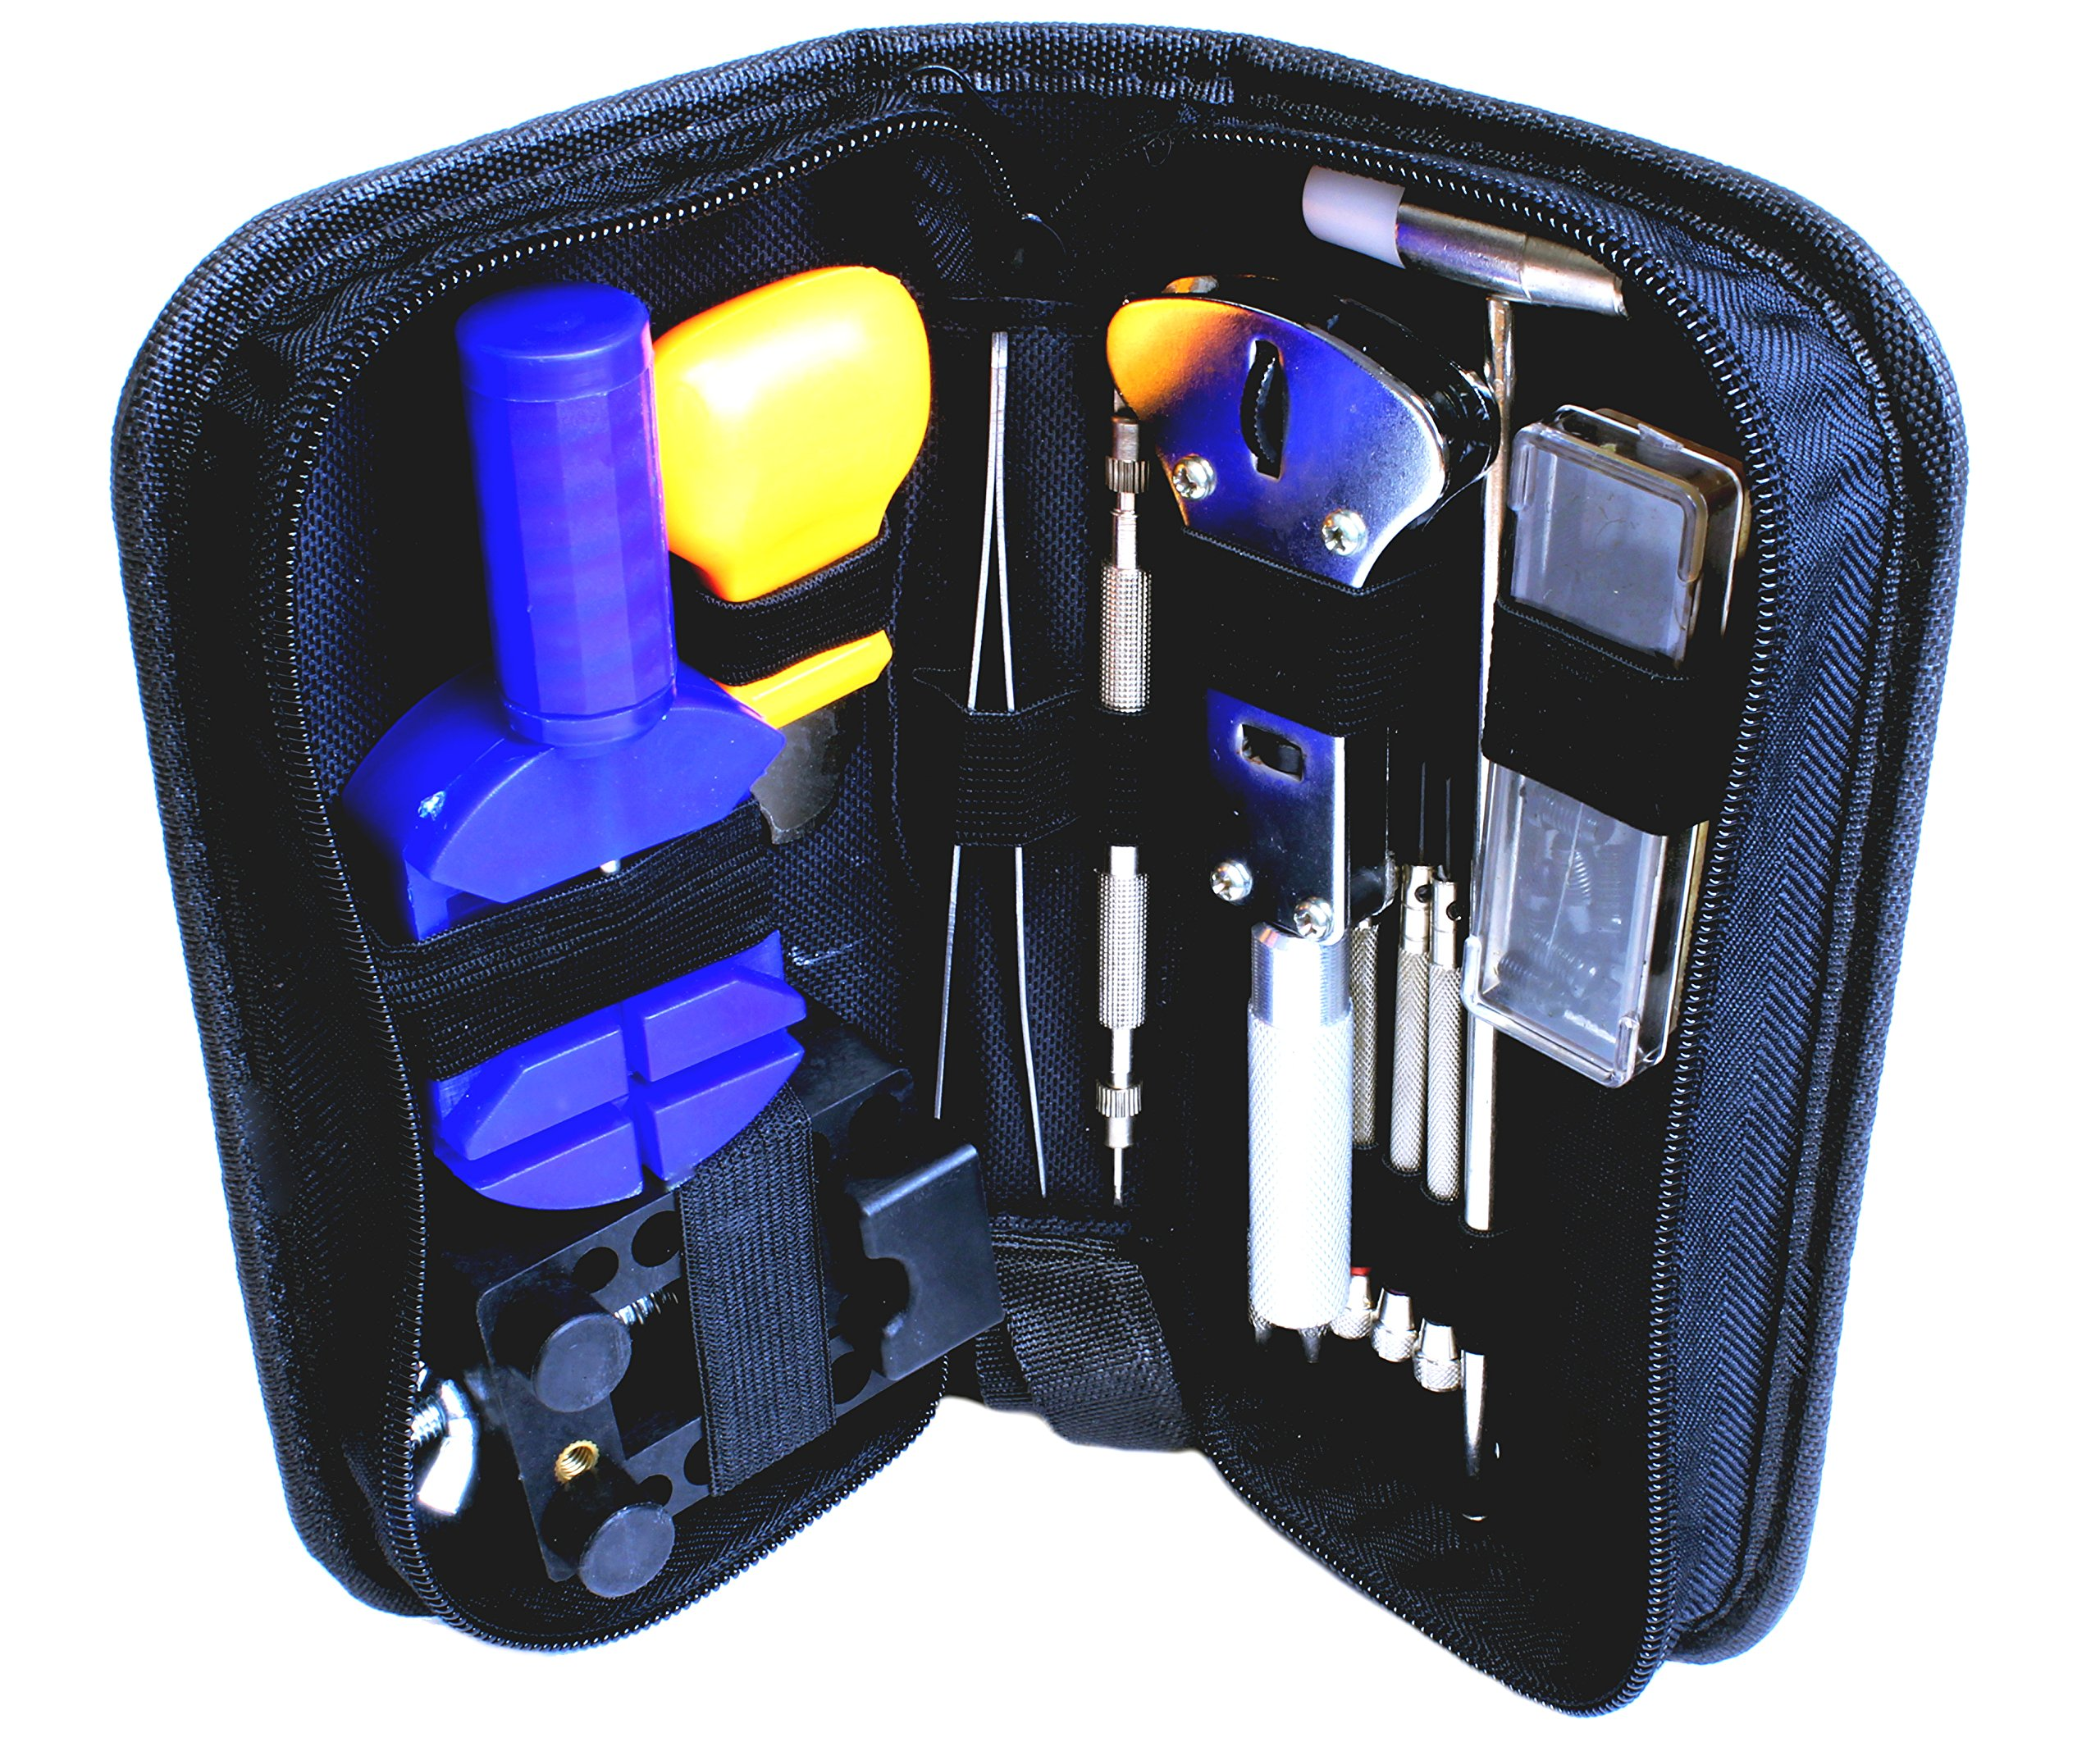 "High Precision Watch Repair Tool Kit - 13 Piece Watch Repair Kit - Watch Repair Set - Stainless Steel Watch Tool Set with Carrying Case - (8' x 4"" x 2"")"